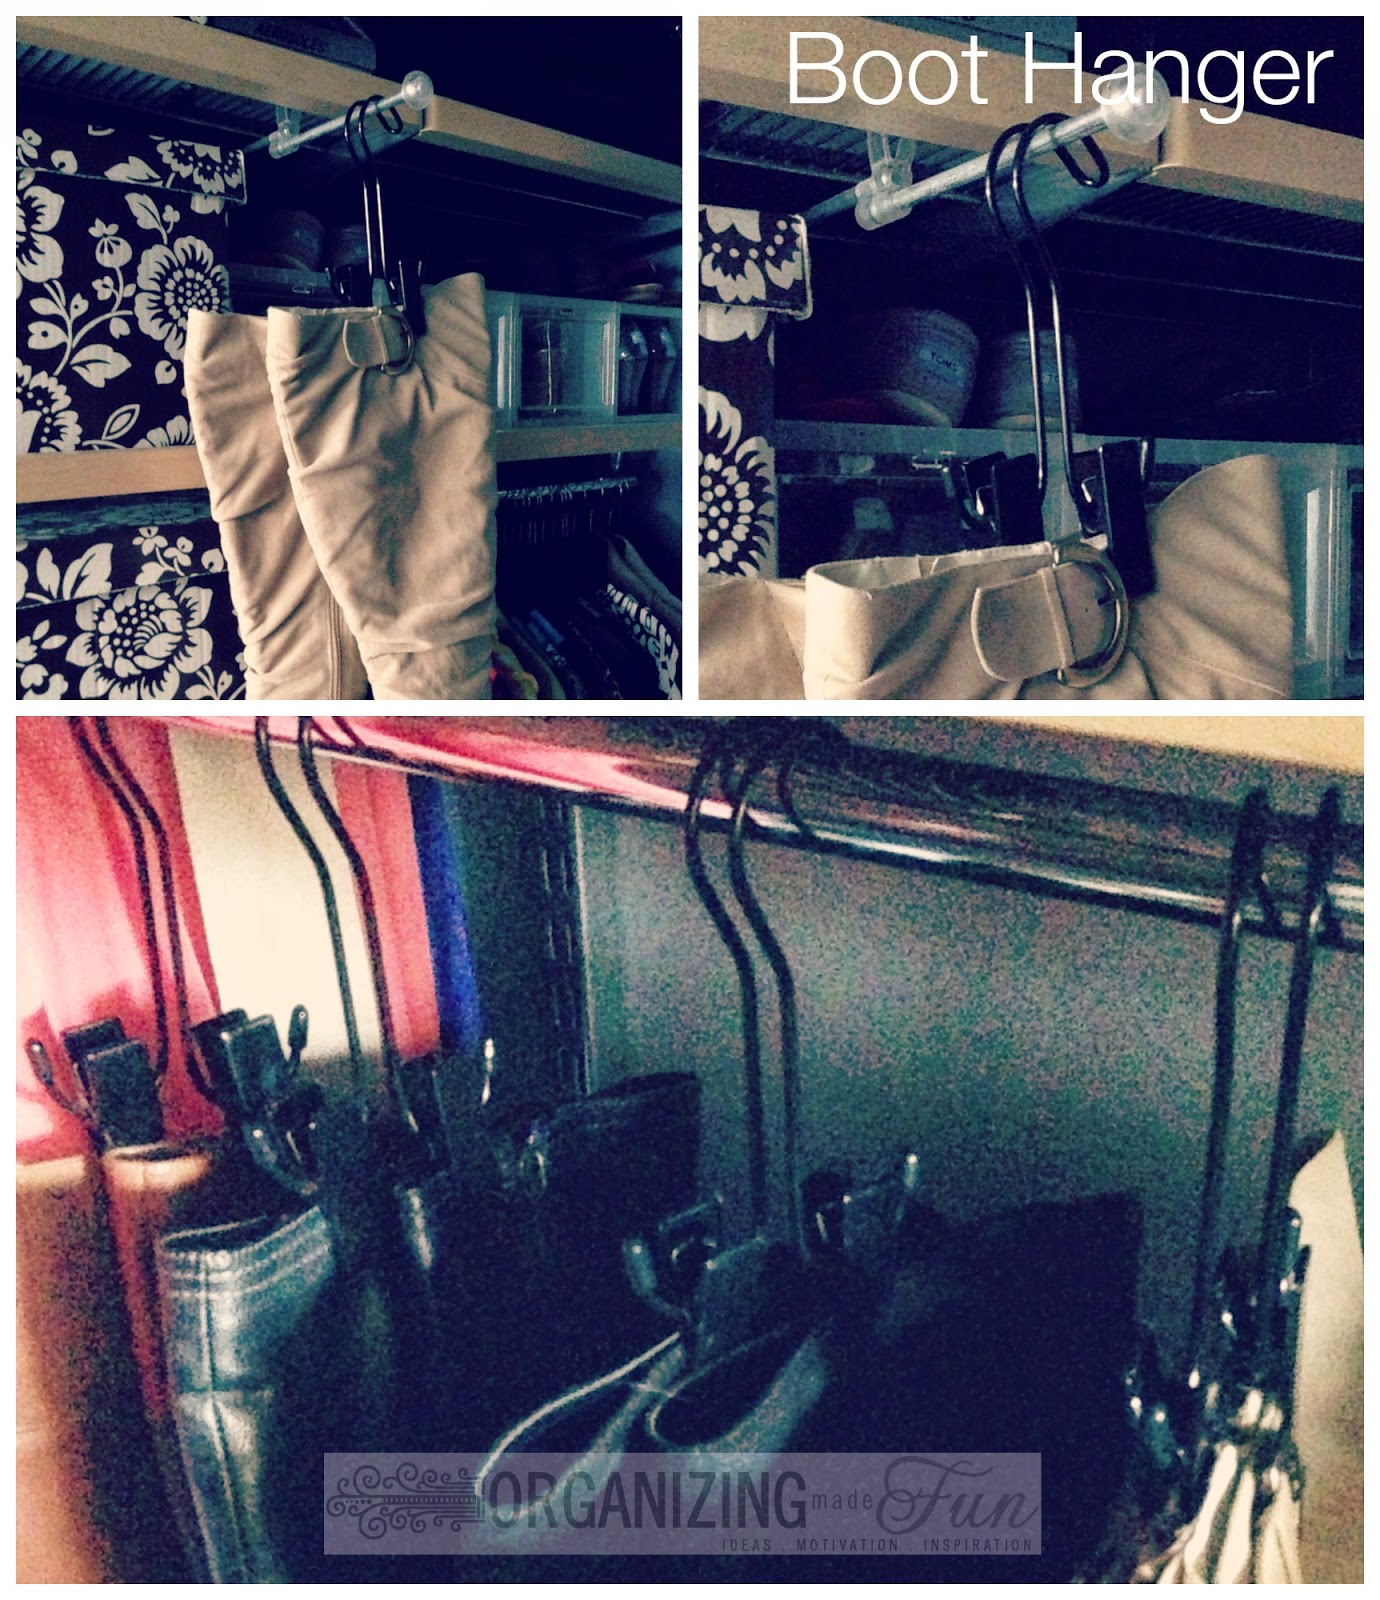 My favorite way to hang boots - a boot hanger :: OrganizingMadeFun.com